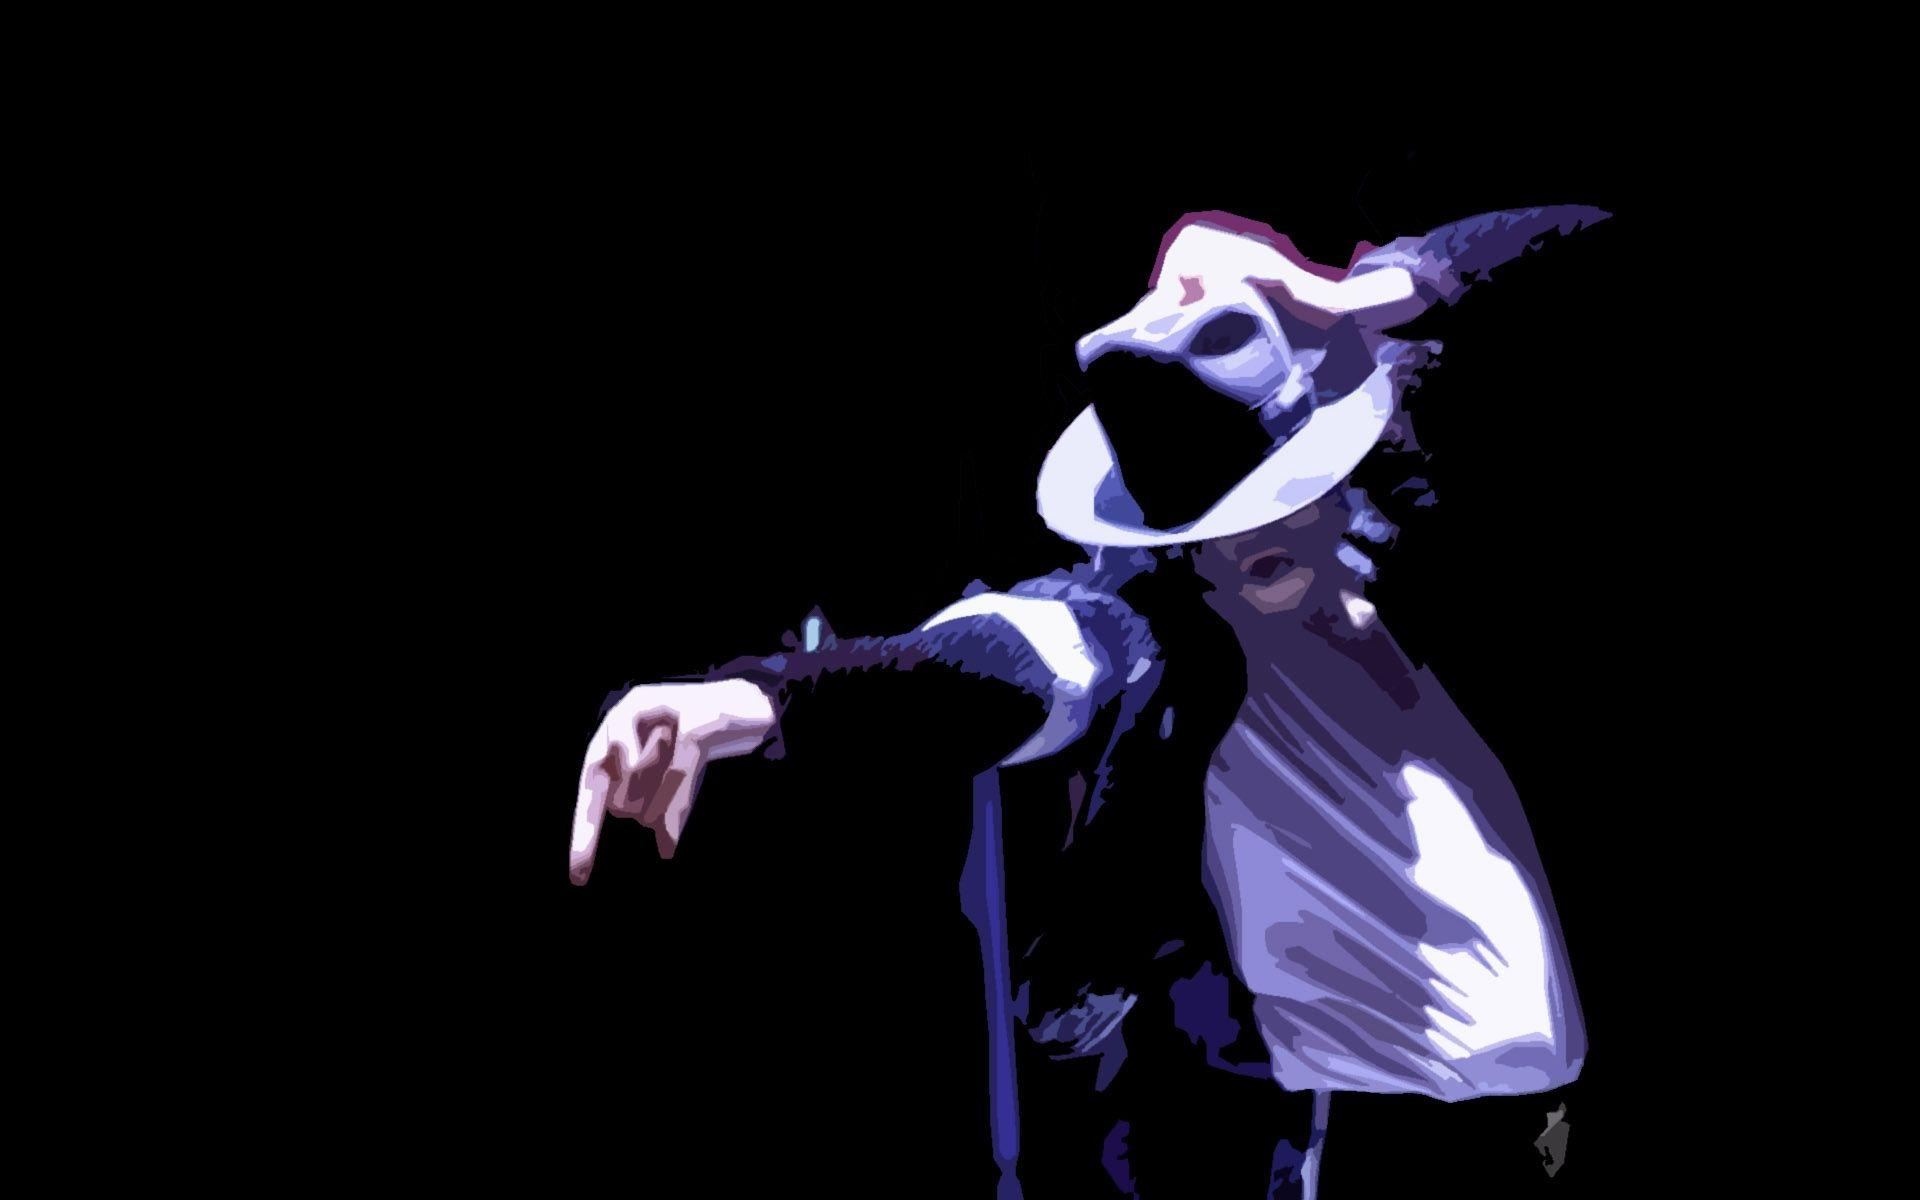 Michael Jackson wallpaper - 935586